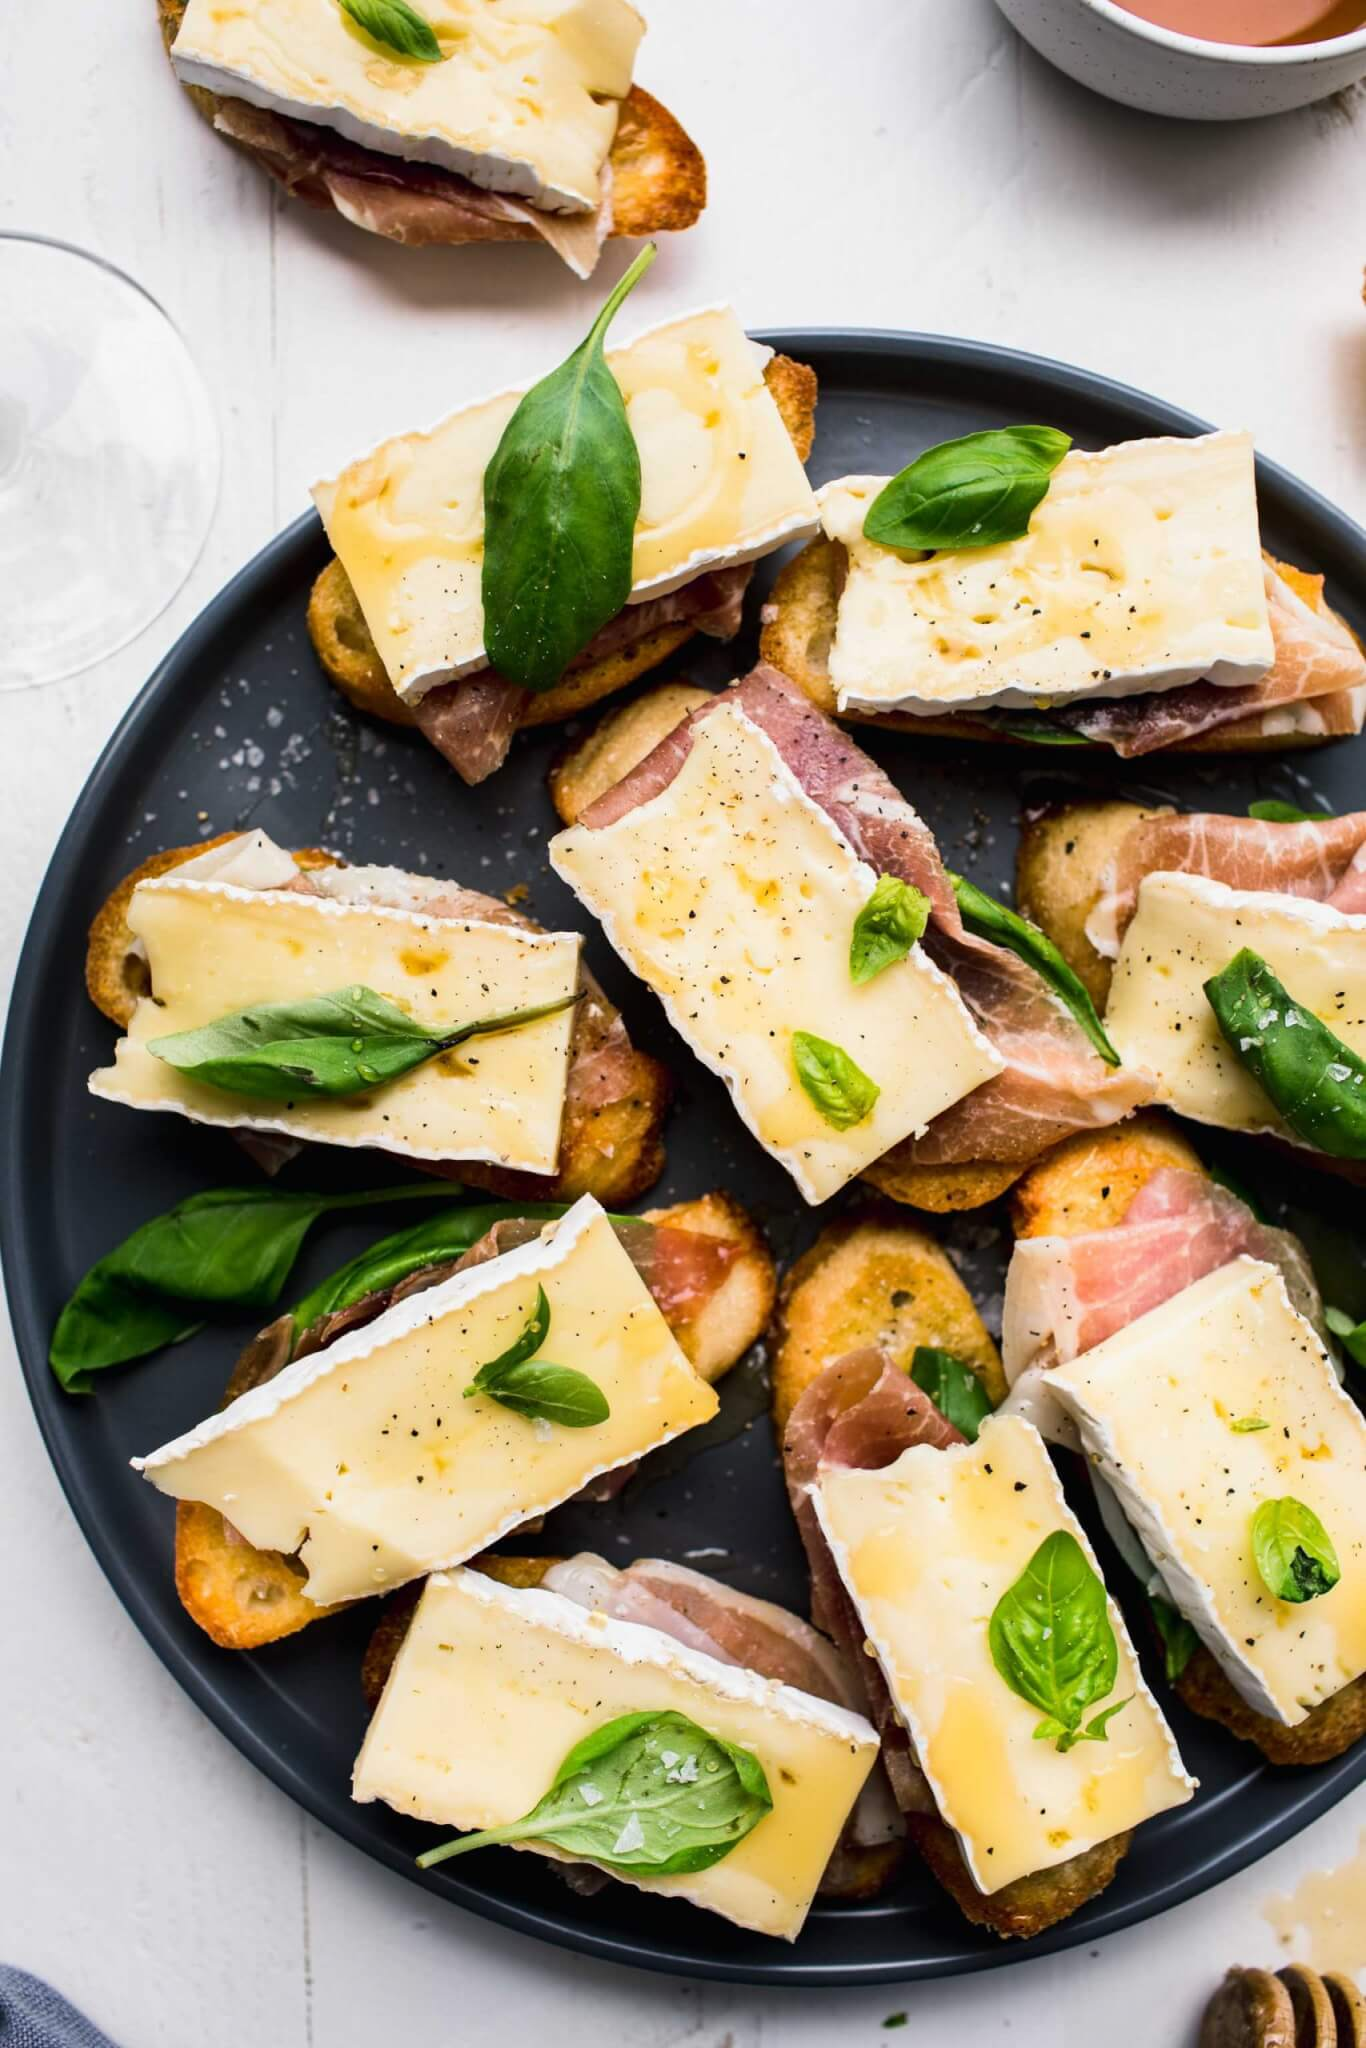 Crostini topped with brie, basil and prosciutto arranged on grey plate next to honey wand.